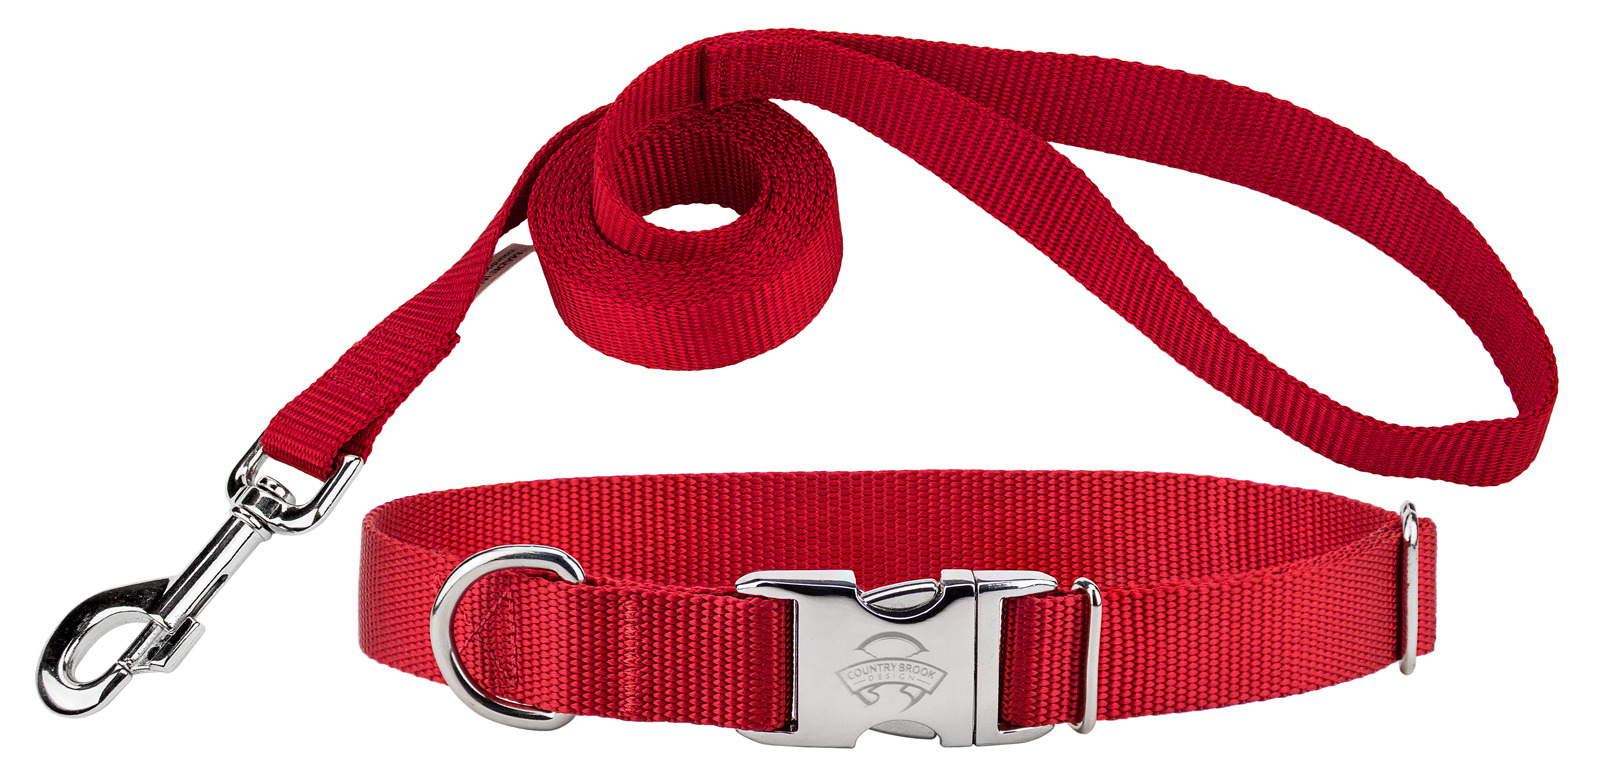 Country Brook Design | Premium Nylon Dog Collar and Leash by Country Brook Design